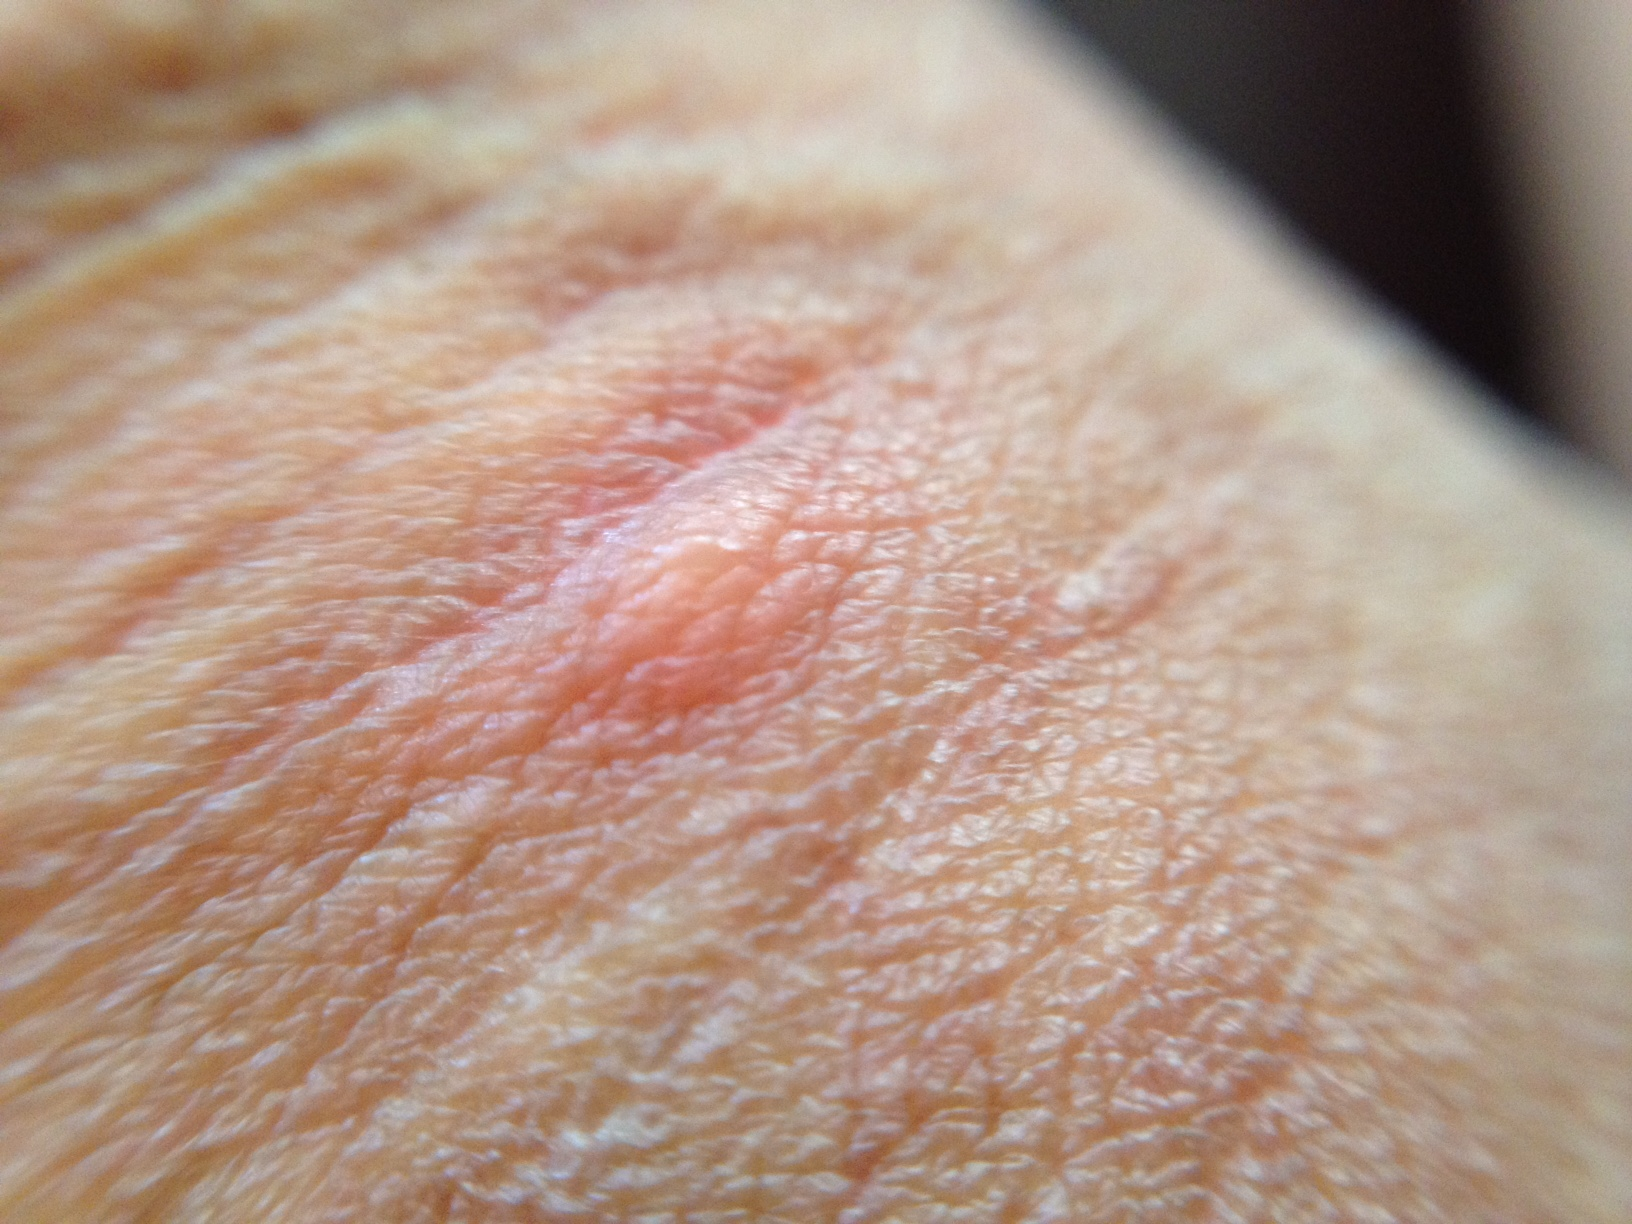 ... Shaft white bumps on skin, little, dry, hard itchy white spots